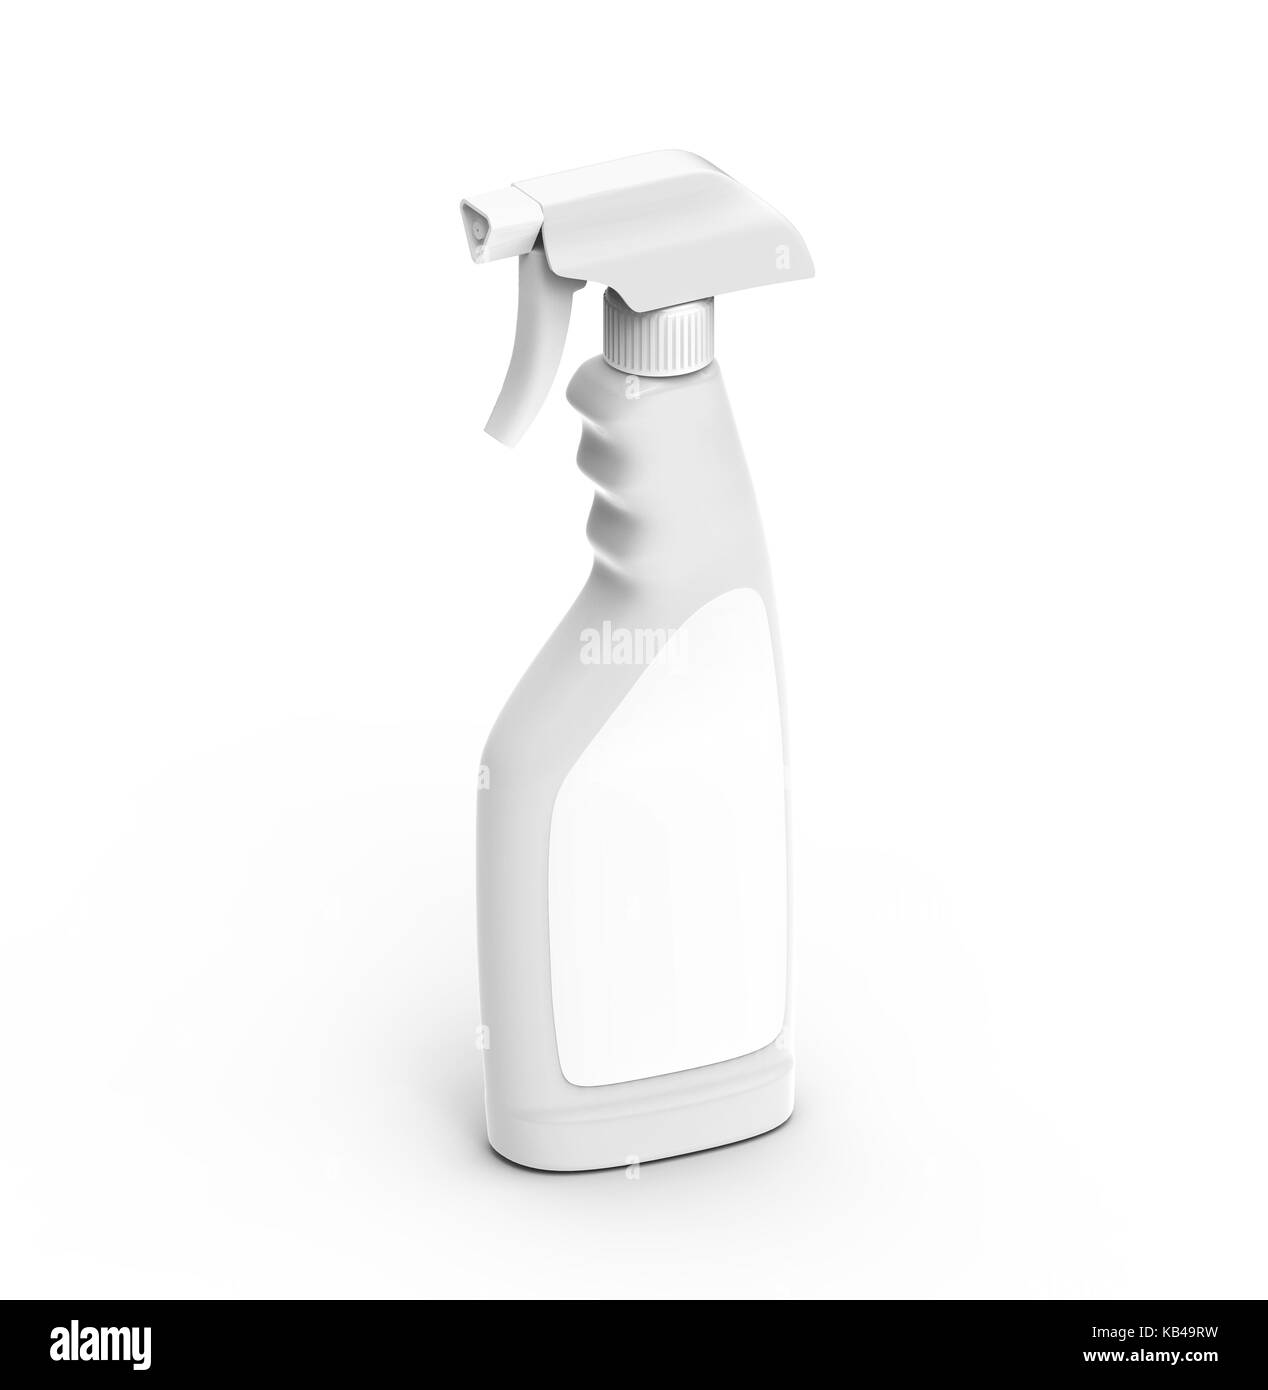 glass cleaner mockup 3d rendering spray bottle template with blank